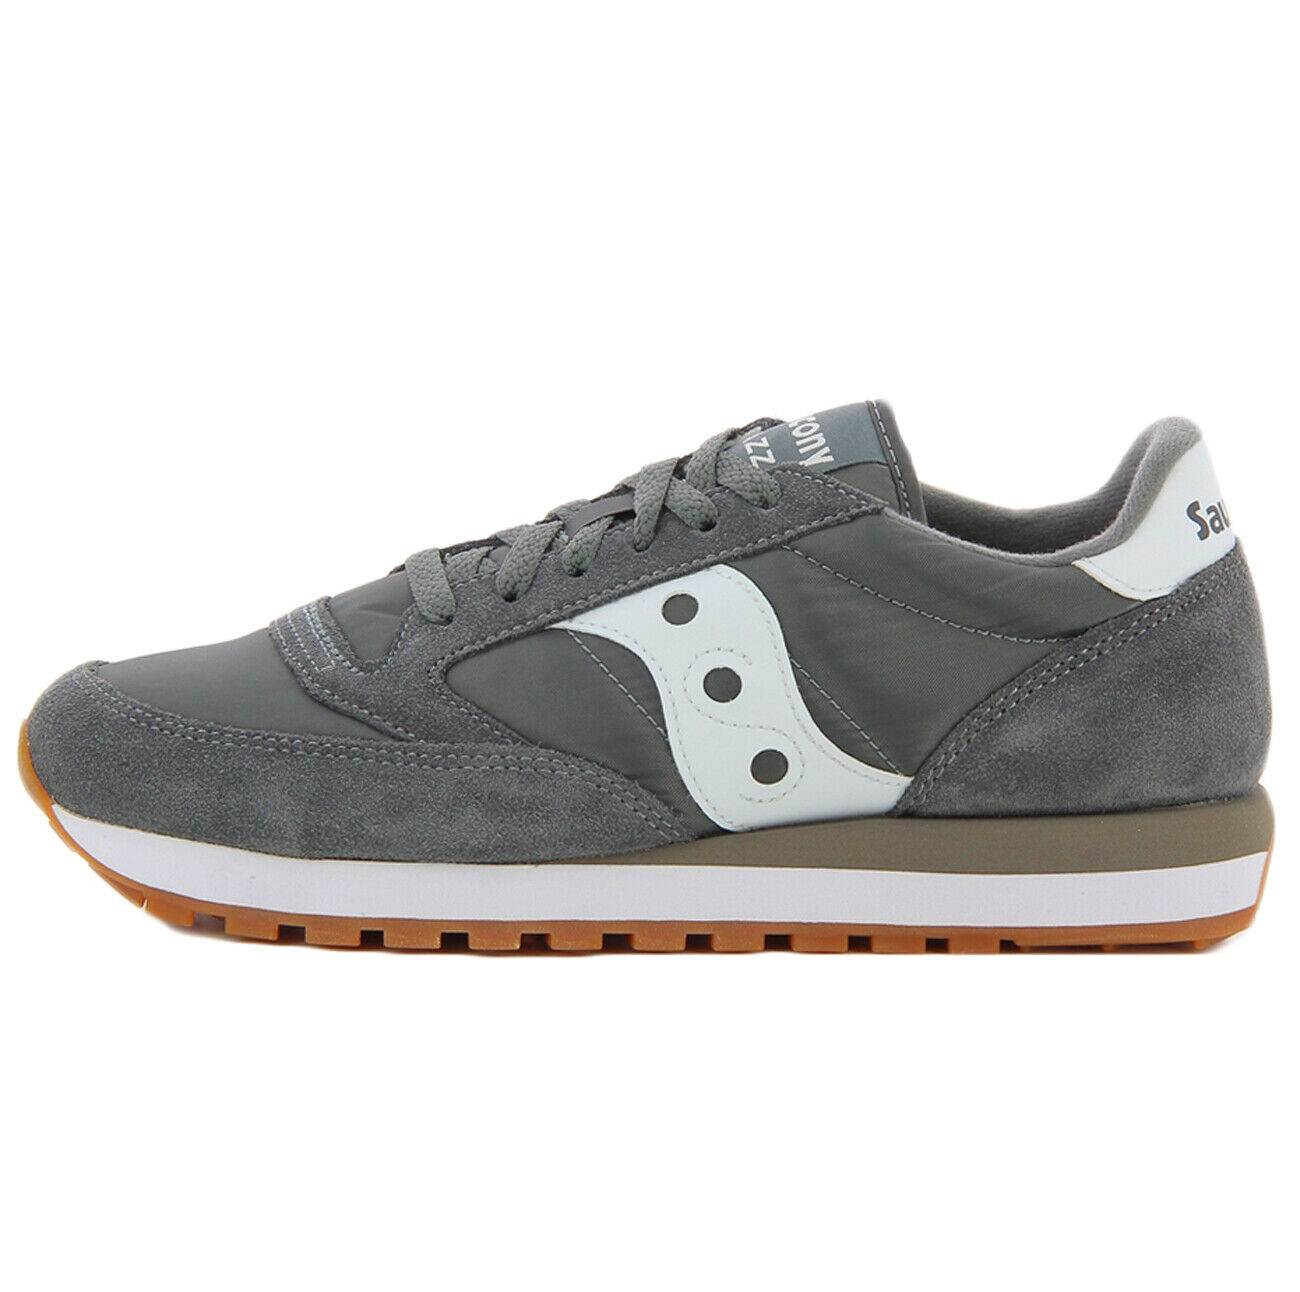 Saucony trainers jazz original grey s2044-434 for Men Saucony Jazz Original m4